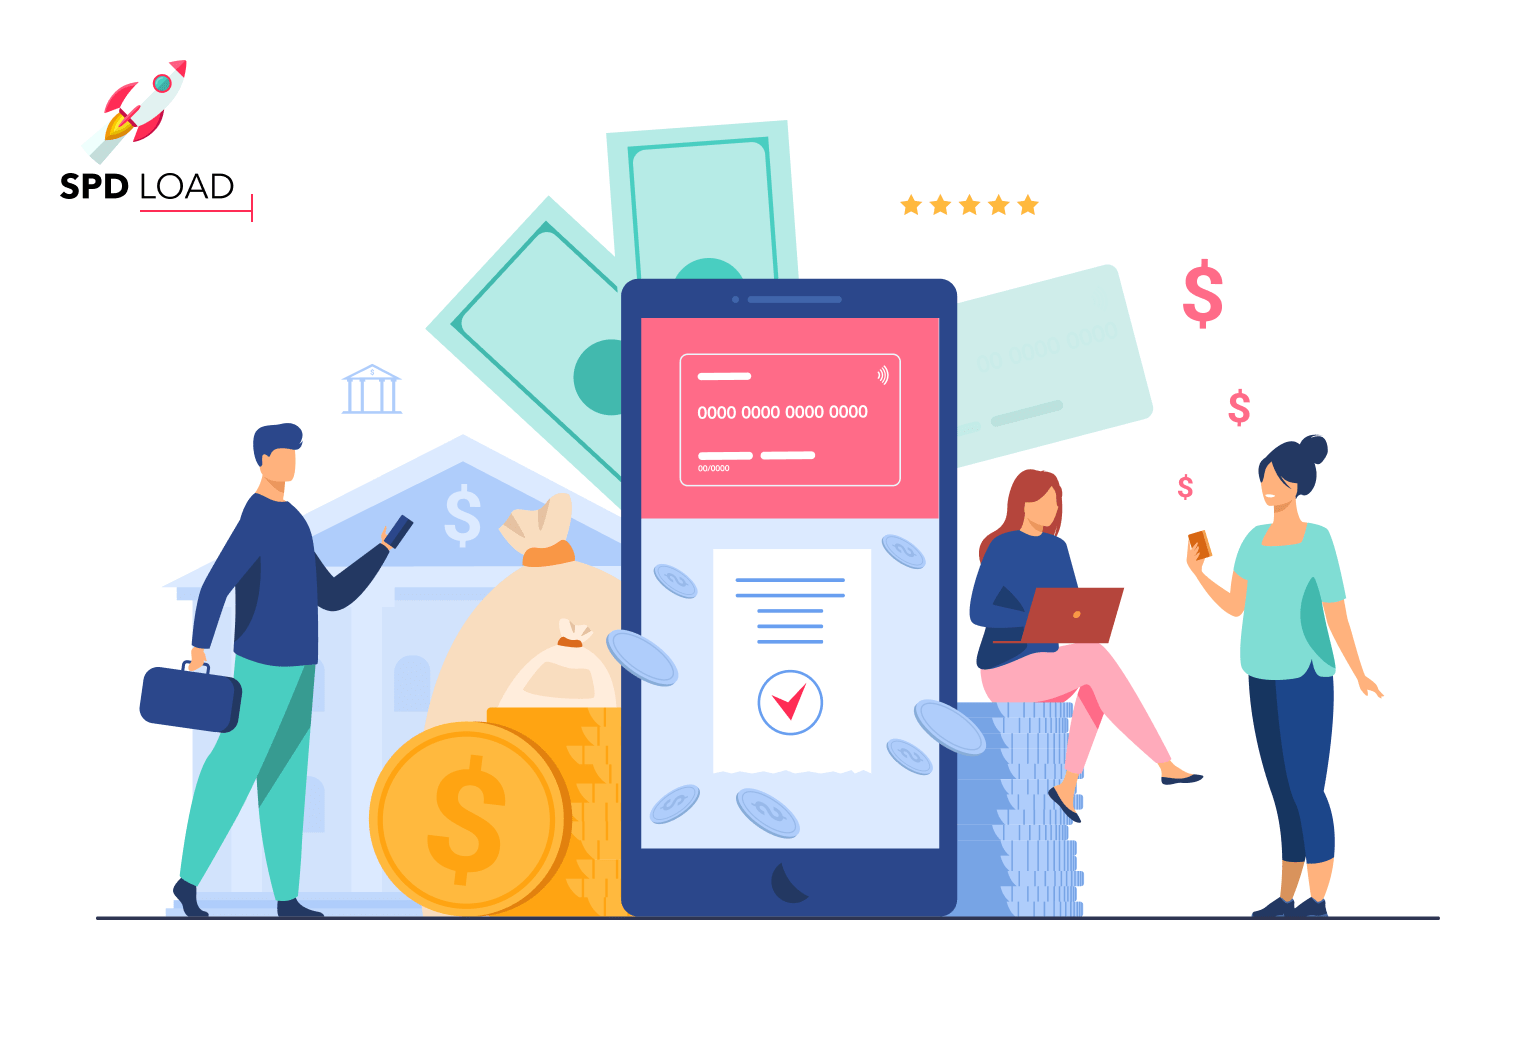 SpdLoad team prepared an in-depth guide on the process and cost of mobile banking application development